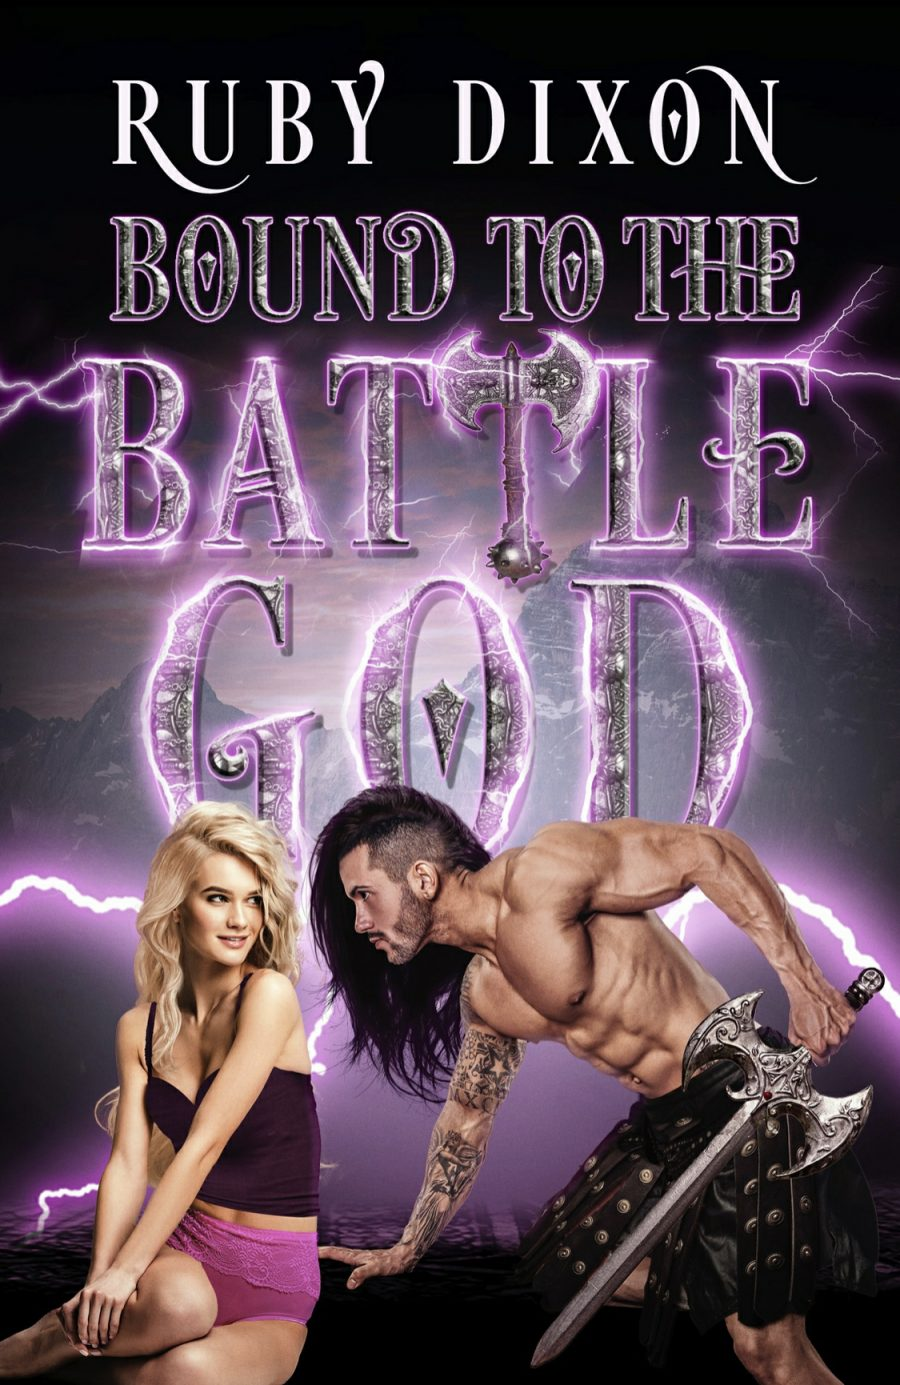 Bound to The Battle God by Ruby Dixon - A Book Review #BookReview #Review #FantasyRomance #Fantasy #HEA #StandAlone #Gods #Mortals #NewRelease #5Star #KindleUnlimited